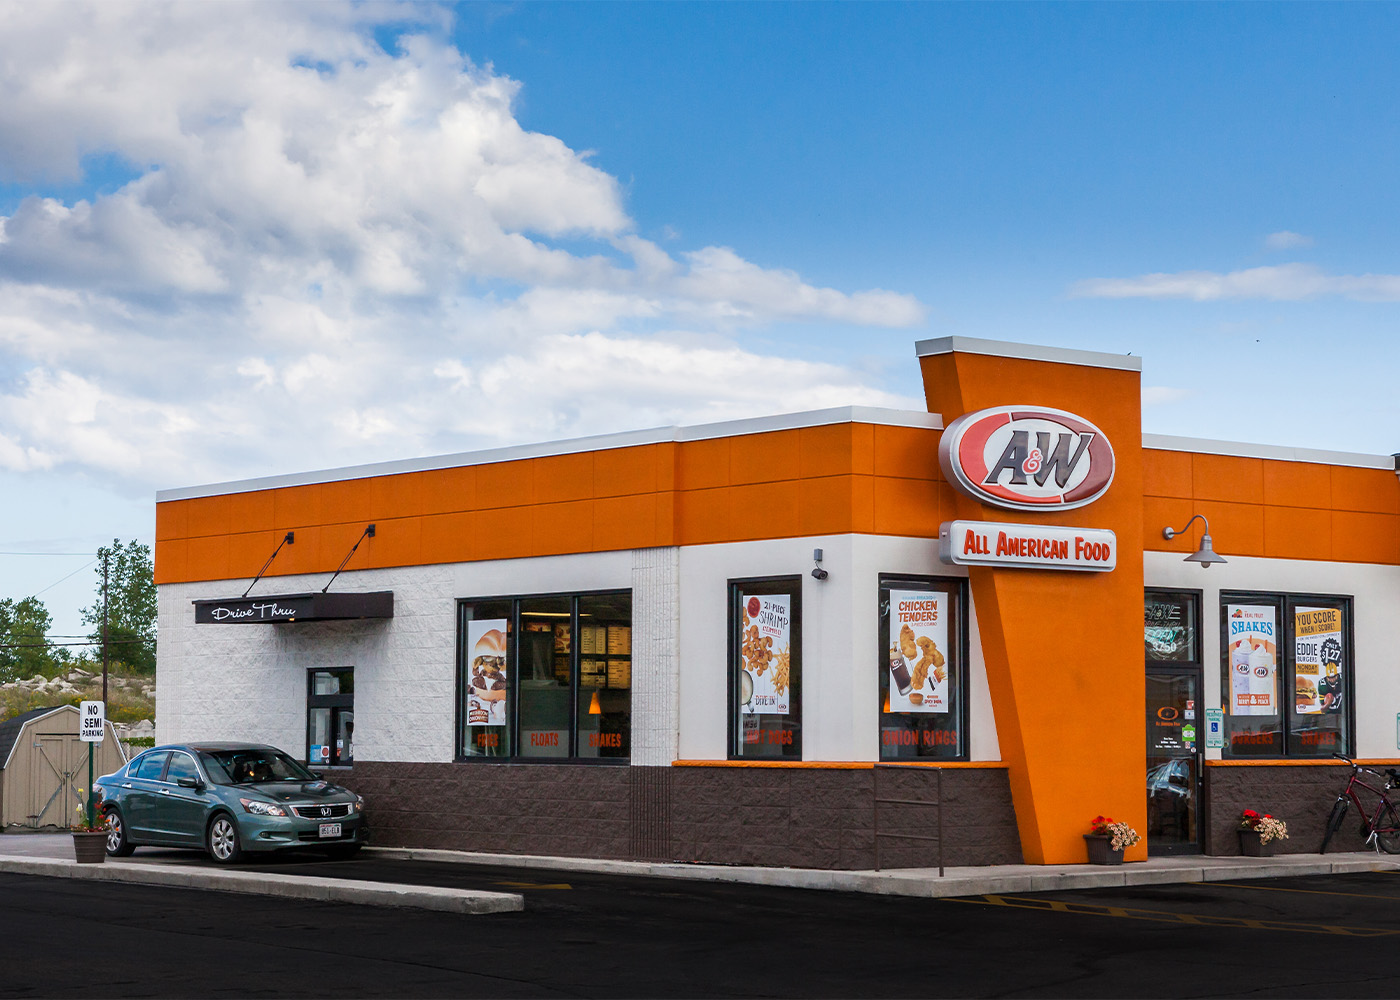 Exterior photo of A&W Restaurant during the daytime.